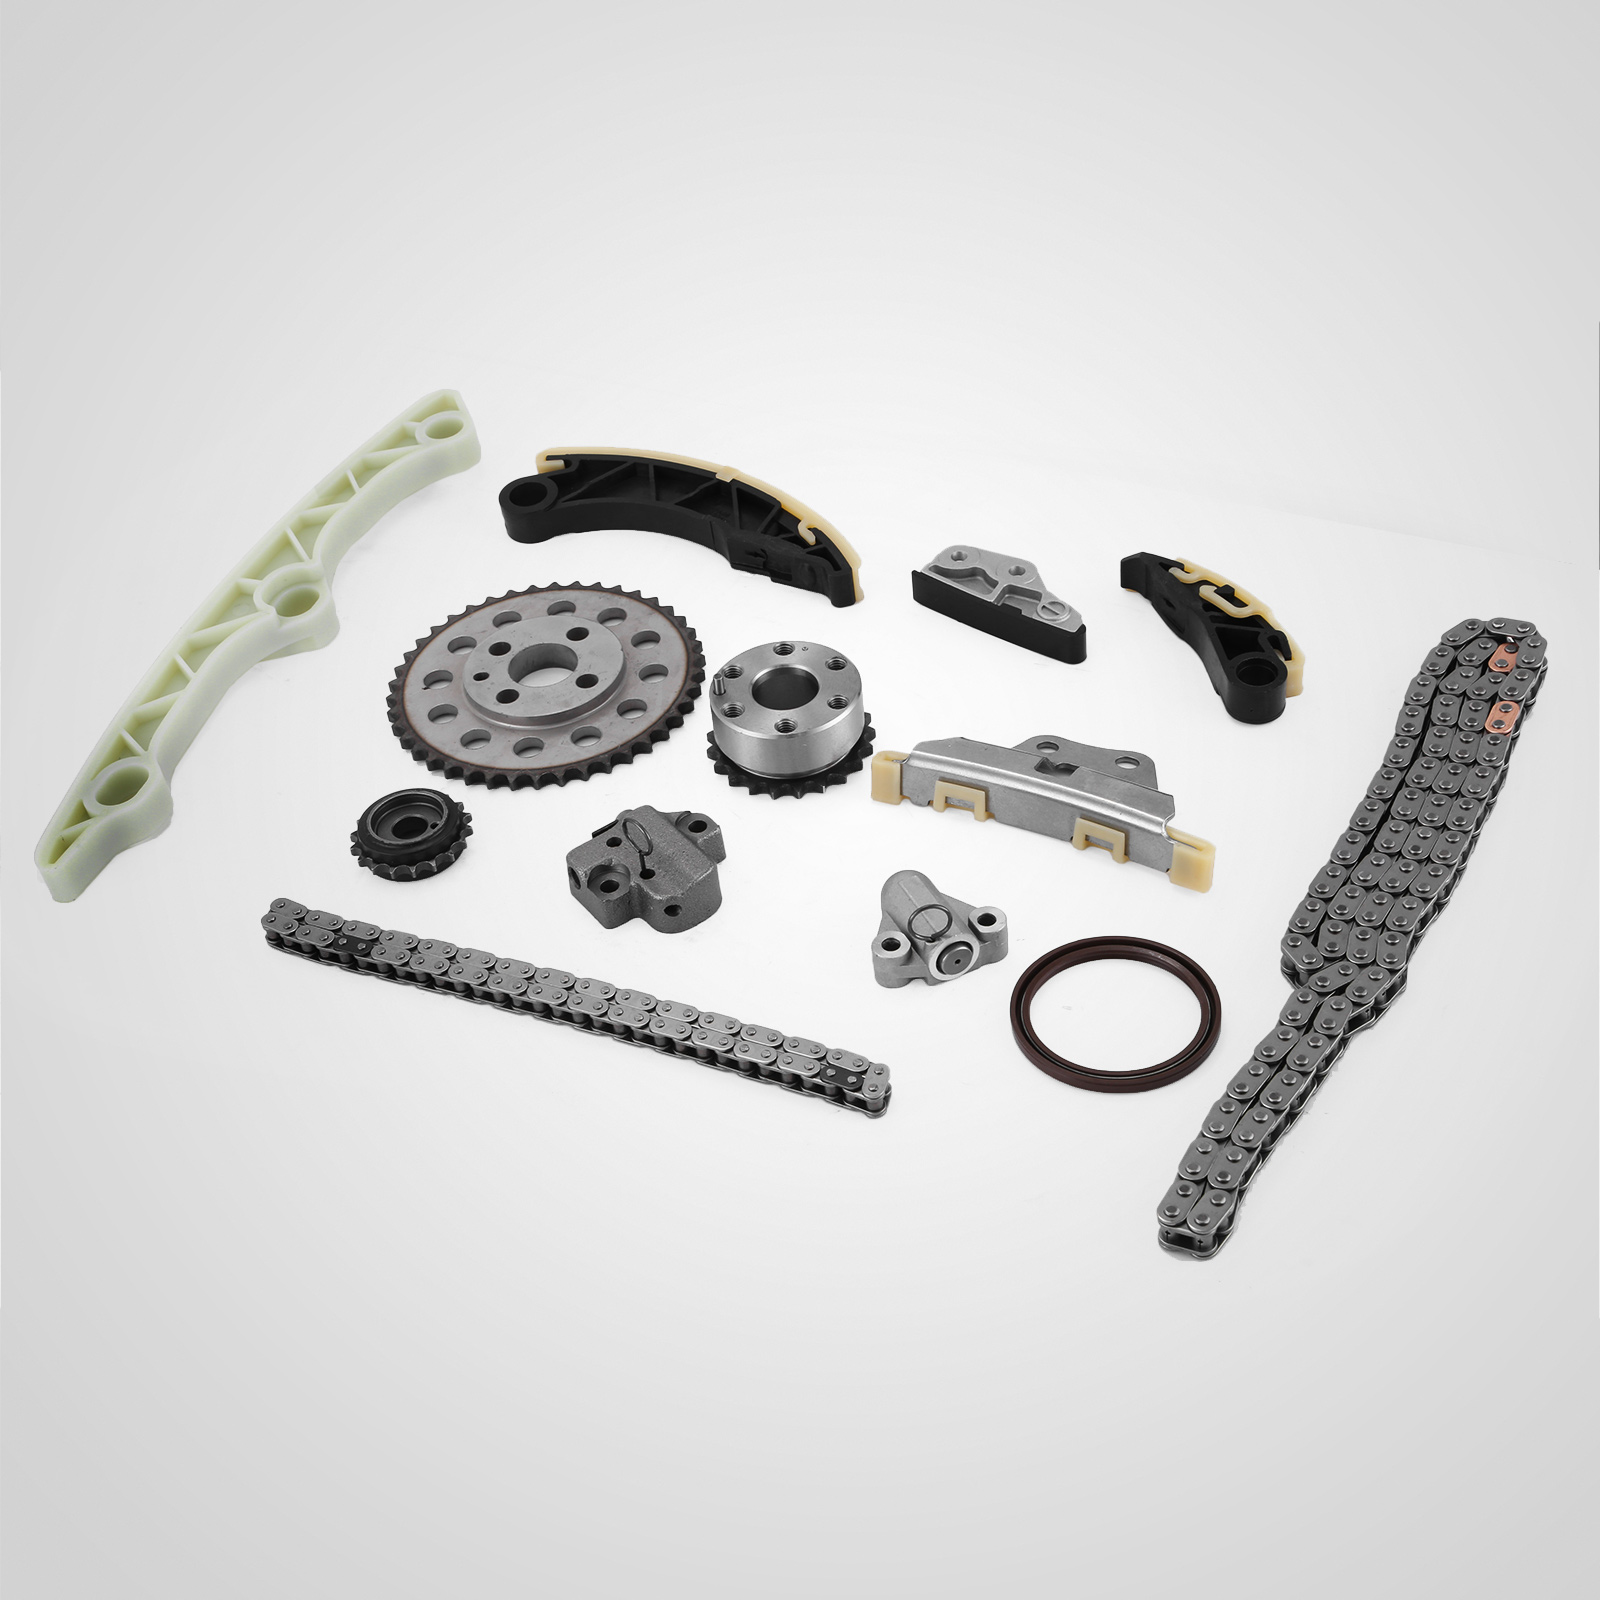 2009 Mazda Cx 7 2 3 Mzr Expression: Timing Chain Kit For 2009-2013 Mazda 3 6 CX7 2.2 Diesel